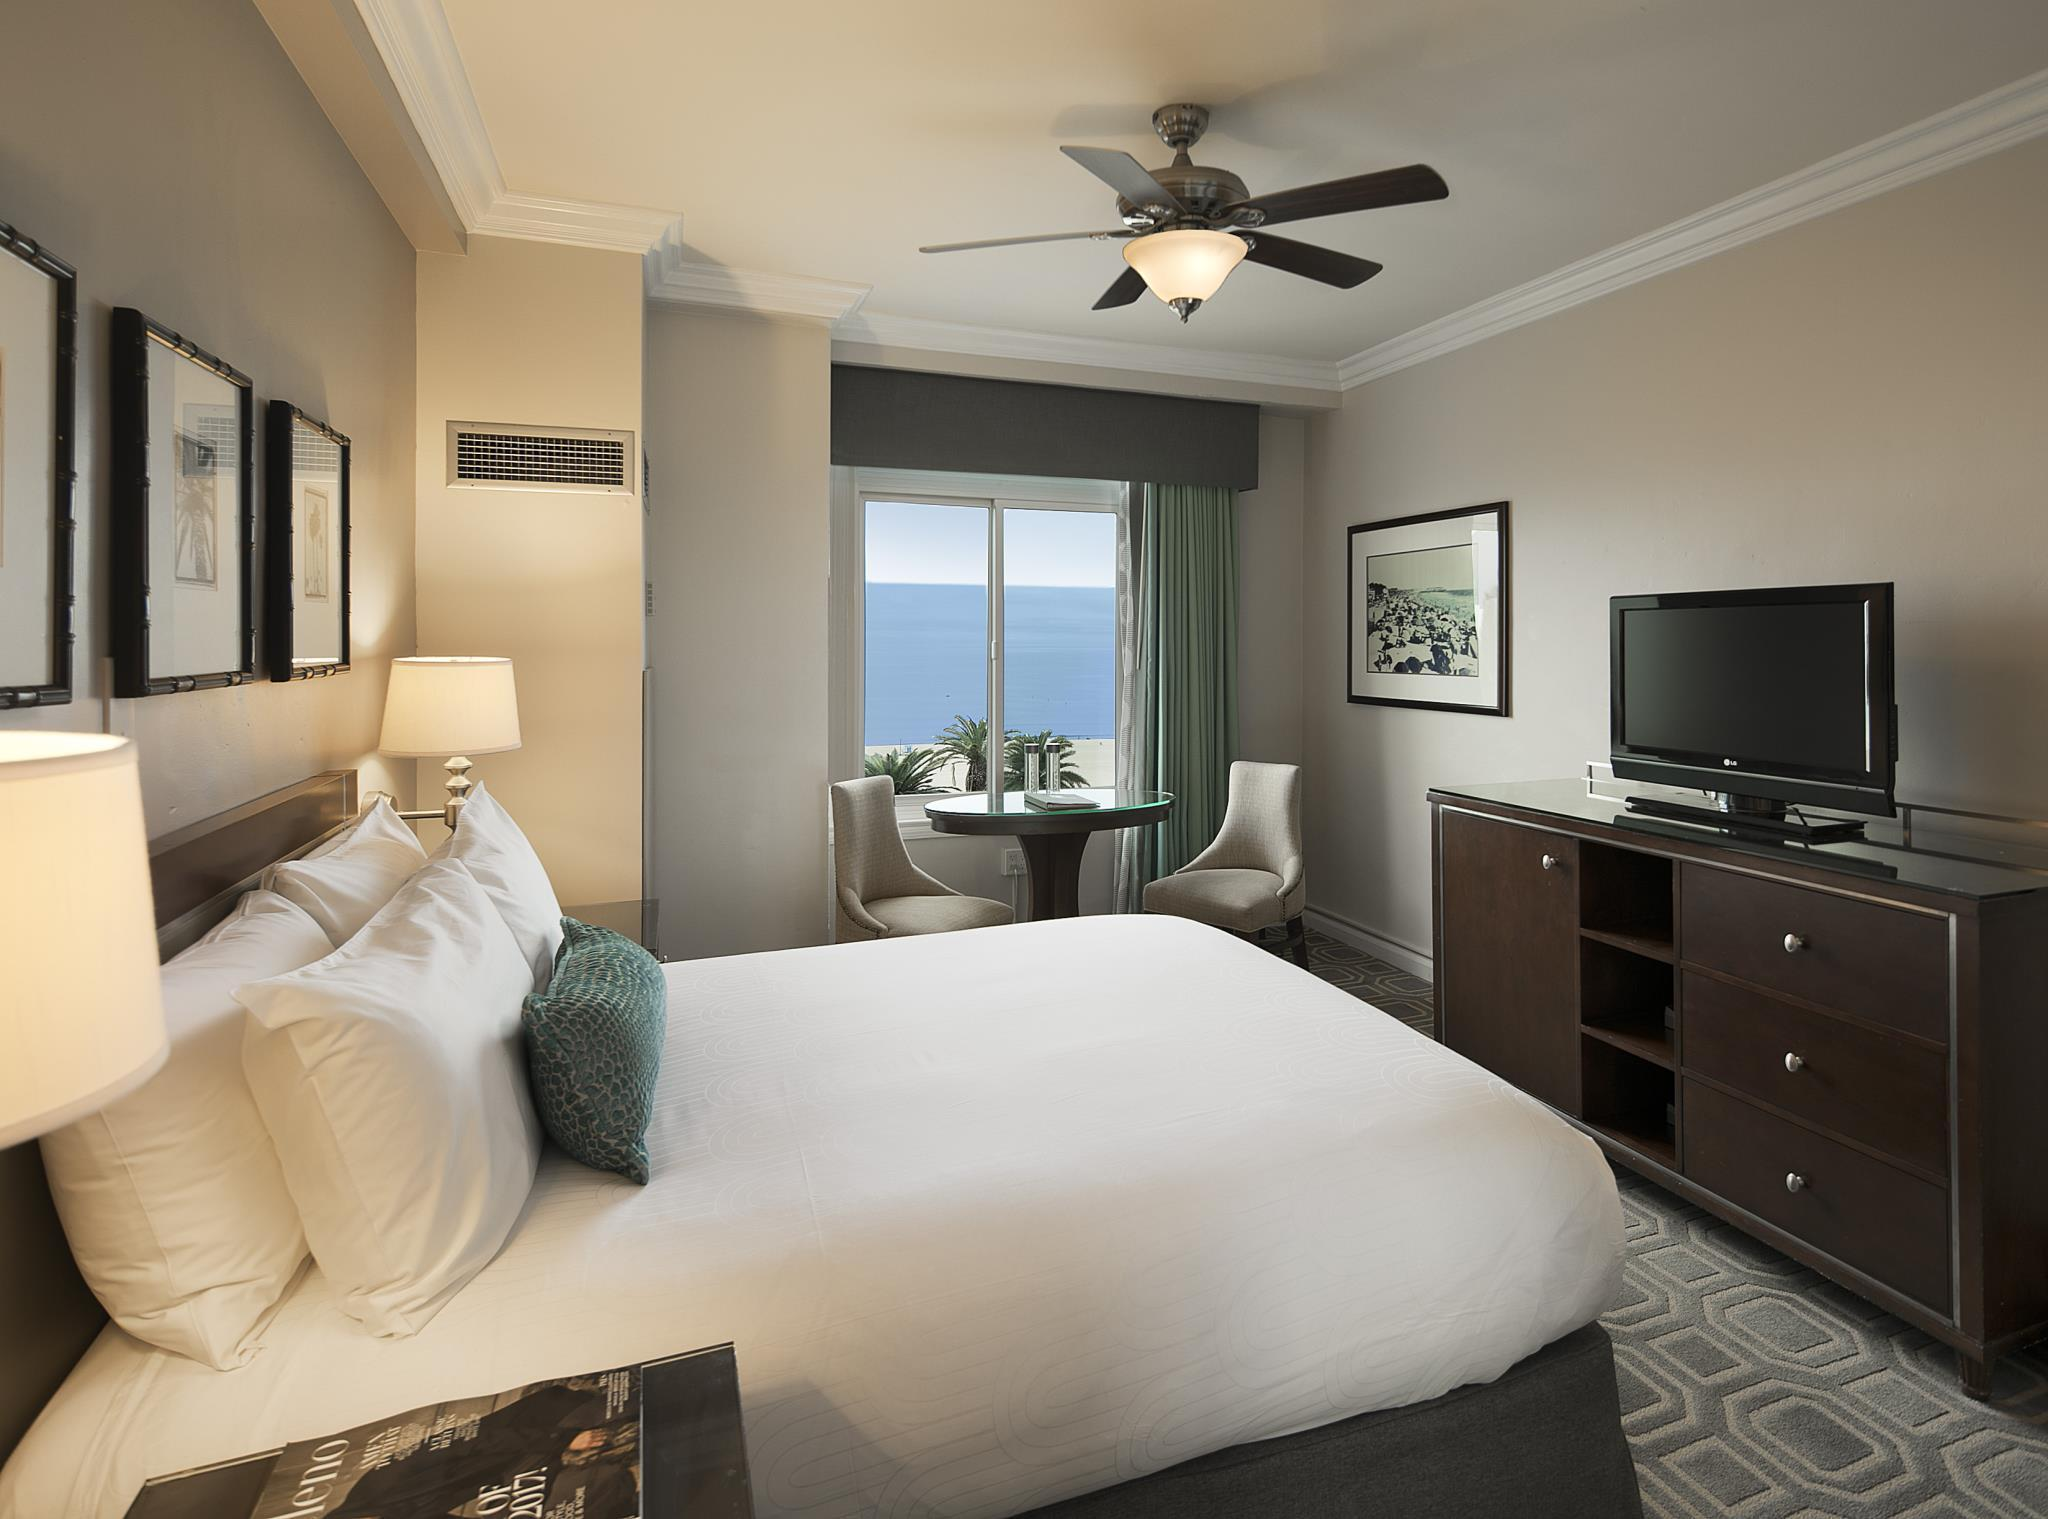 Quarto queen com vista para o mar (Queen Room with Ocean View)